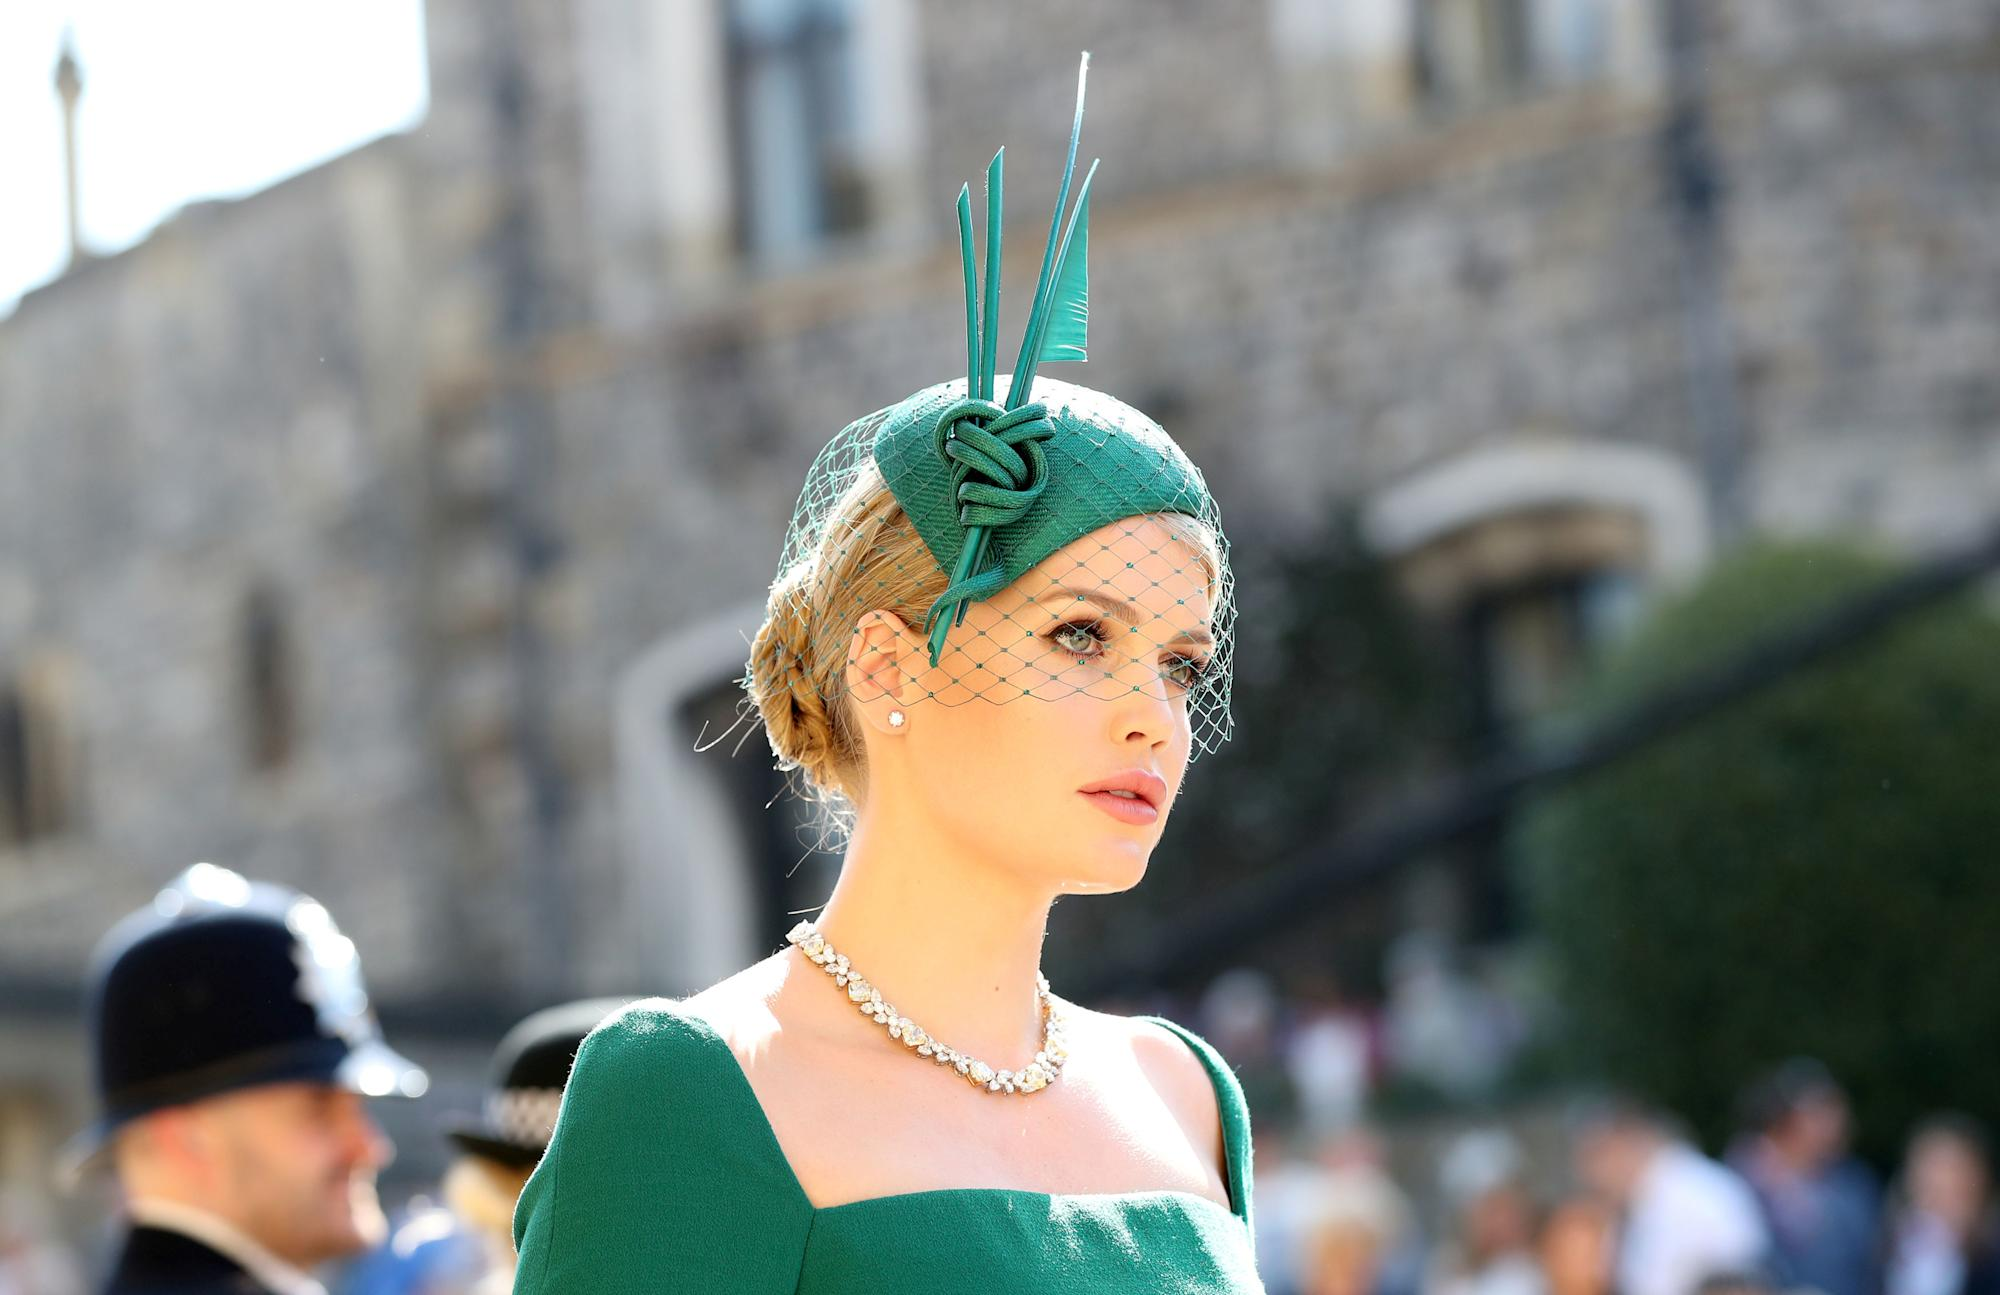 Prince Harry's cousin Lady Kitty Spencer says attention after royal wedding was 'weird' and 'overwhelming'